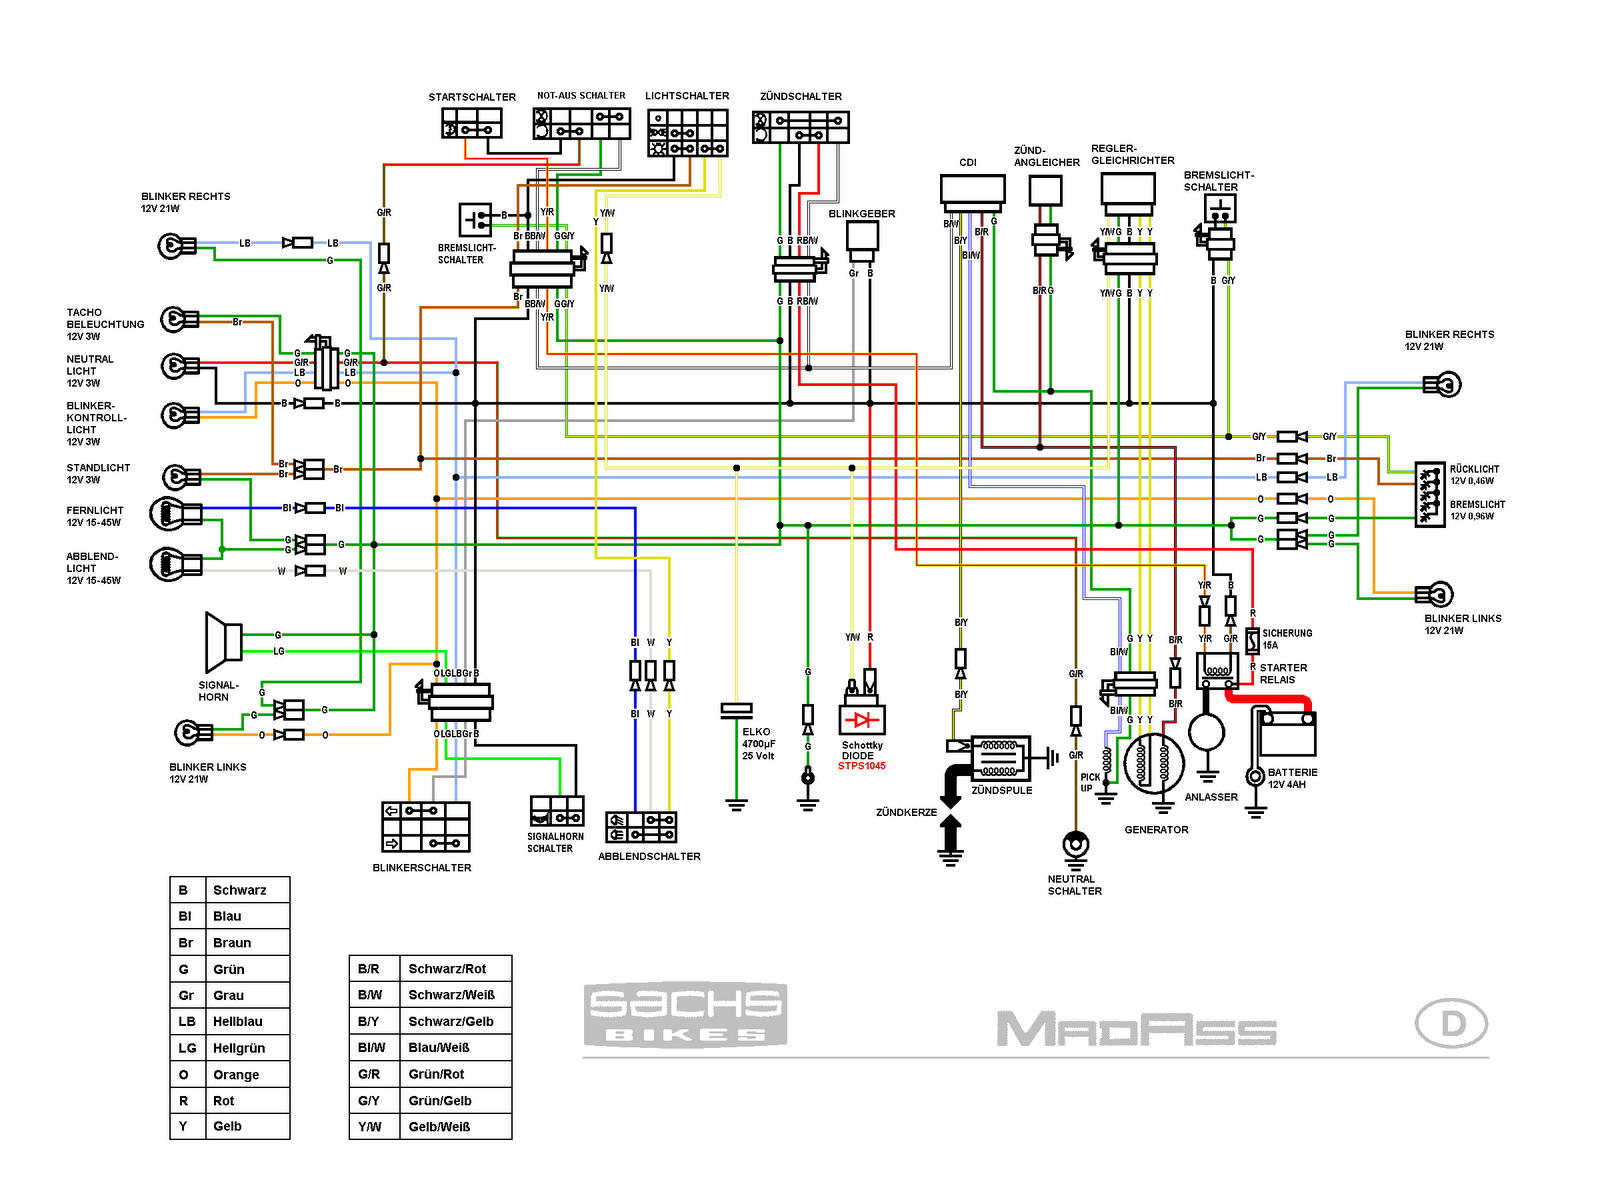 hight resolution of wiring diagram 2007 gsxr 600 cbr1000rr wiring free 05 gsxr 600 headlight wiring diagram 2005 suzuki gsxr 600 wiring diagram